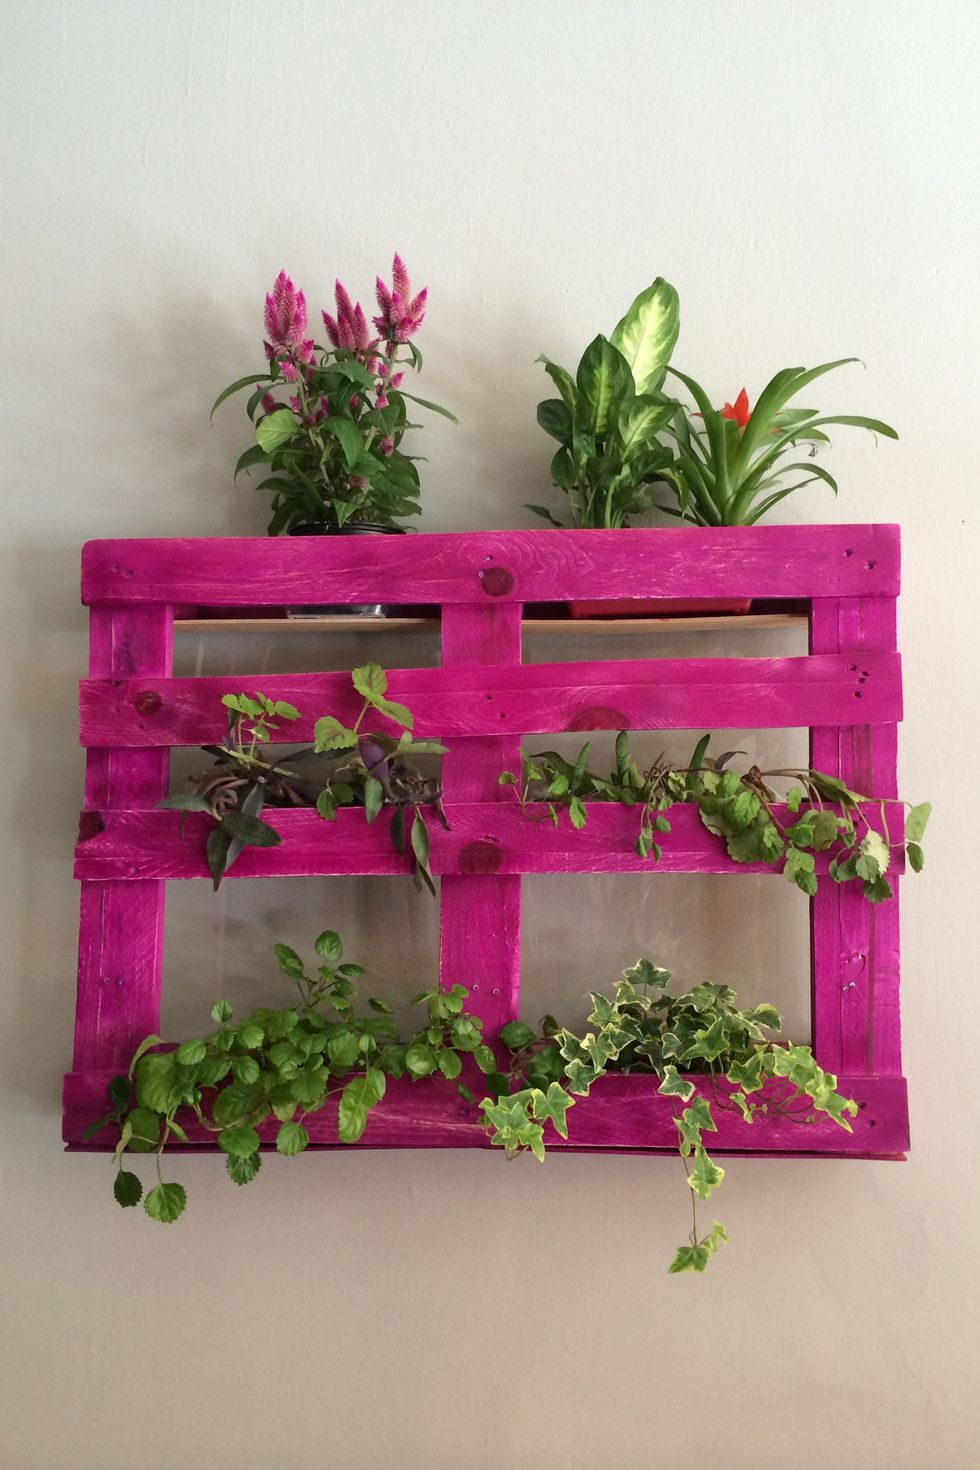 Elle Decor plants-on-pink-shelf-mounted-on-wall-at-home-royalty-free-image-677144299-1552927597.jpg